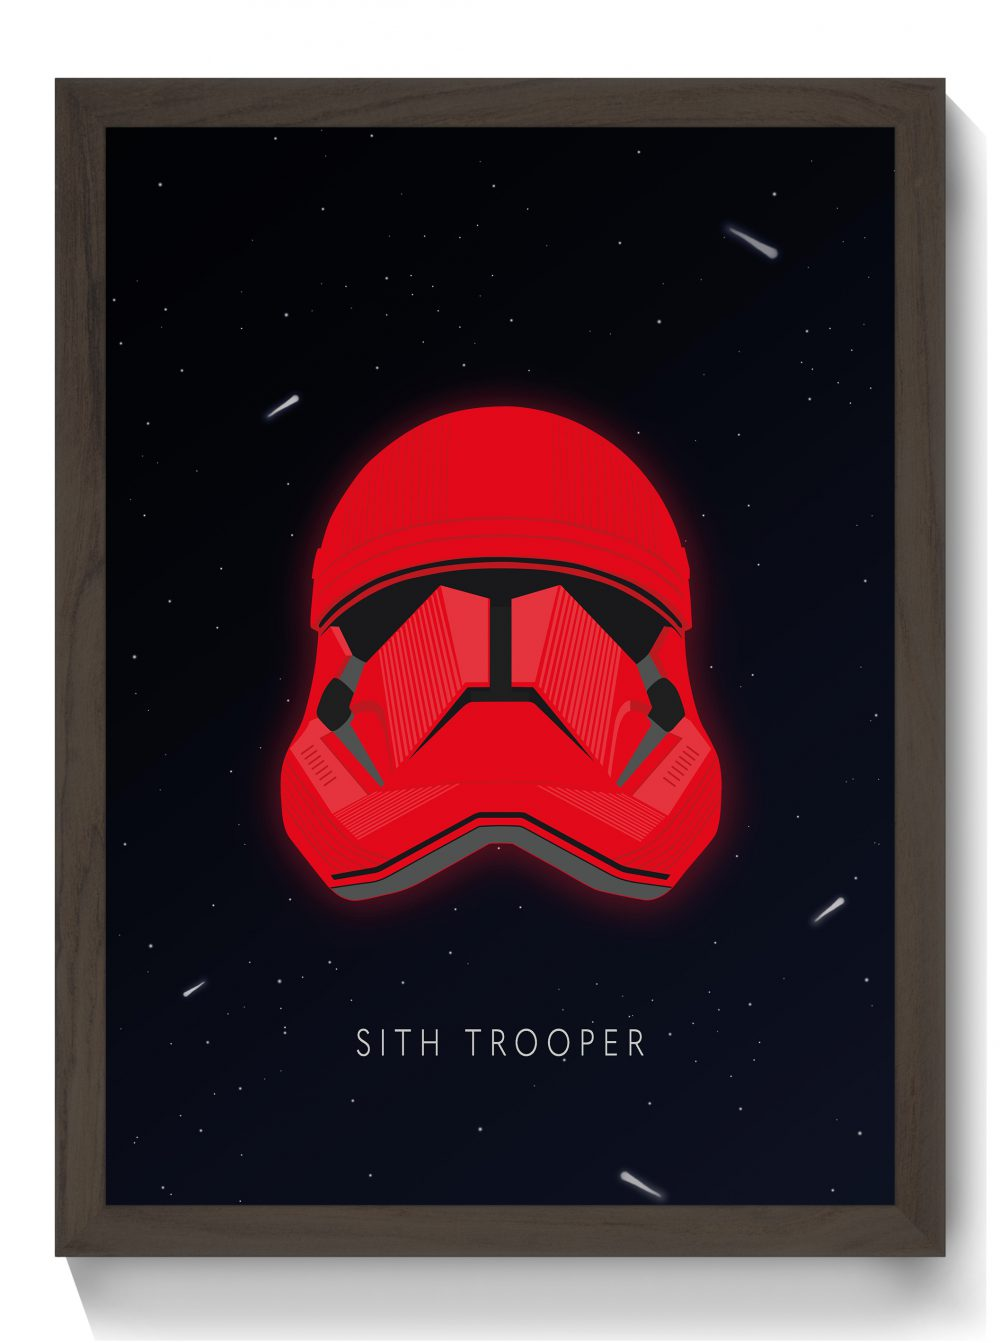 Sith Trooper Poster